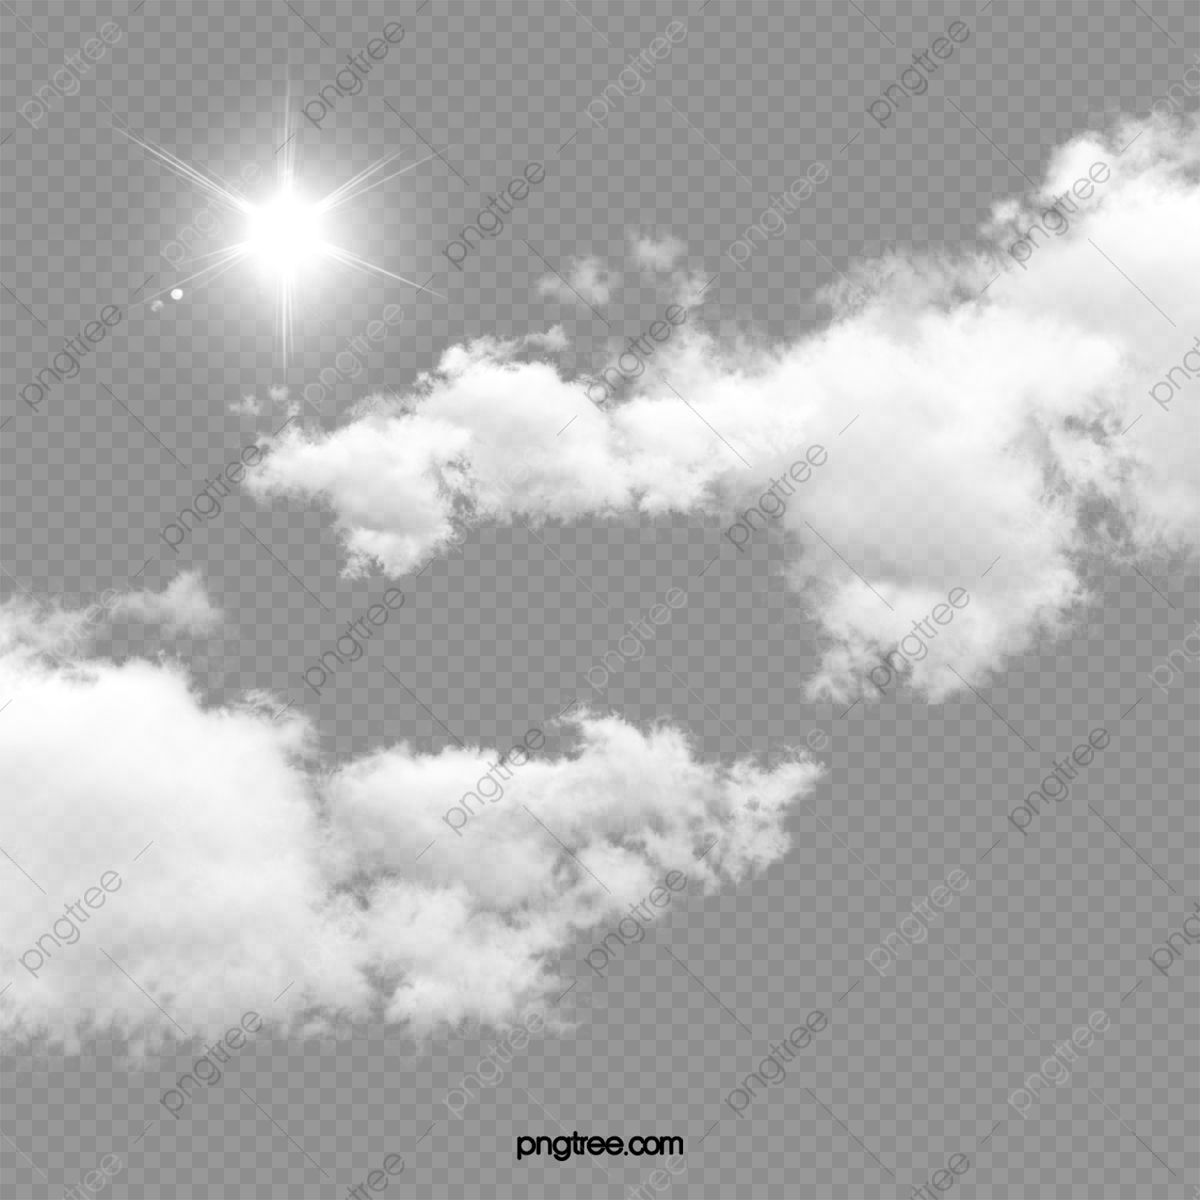 Clouds In The Sky Clouds Sun Sunlight Png Transparent Clipart Image And Psd File For Free Download In 2020 Clouds Clipart Images Psd Background